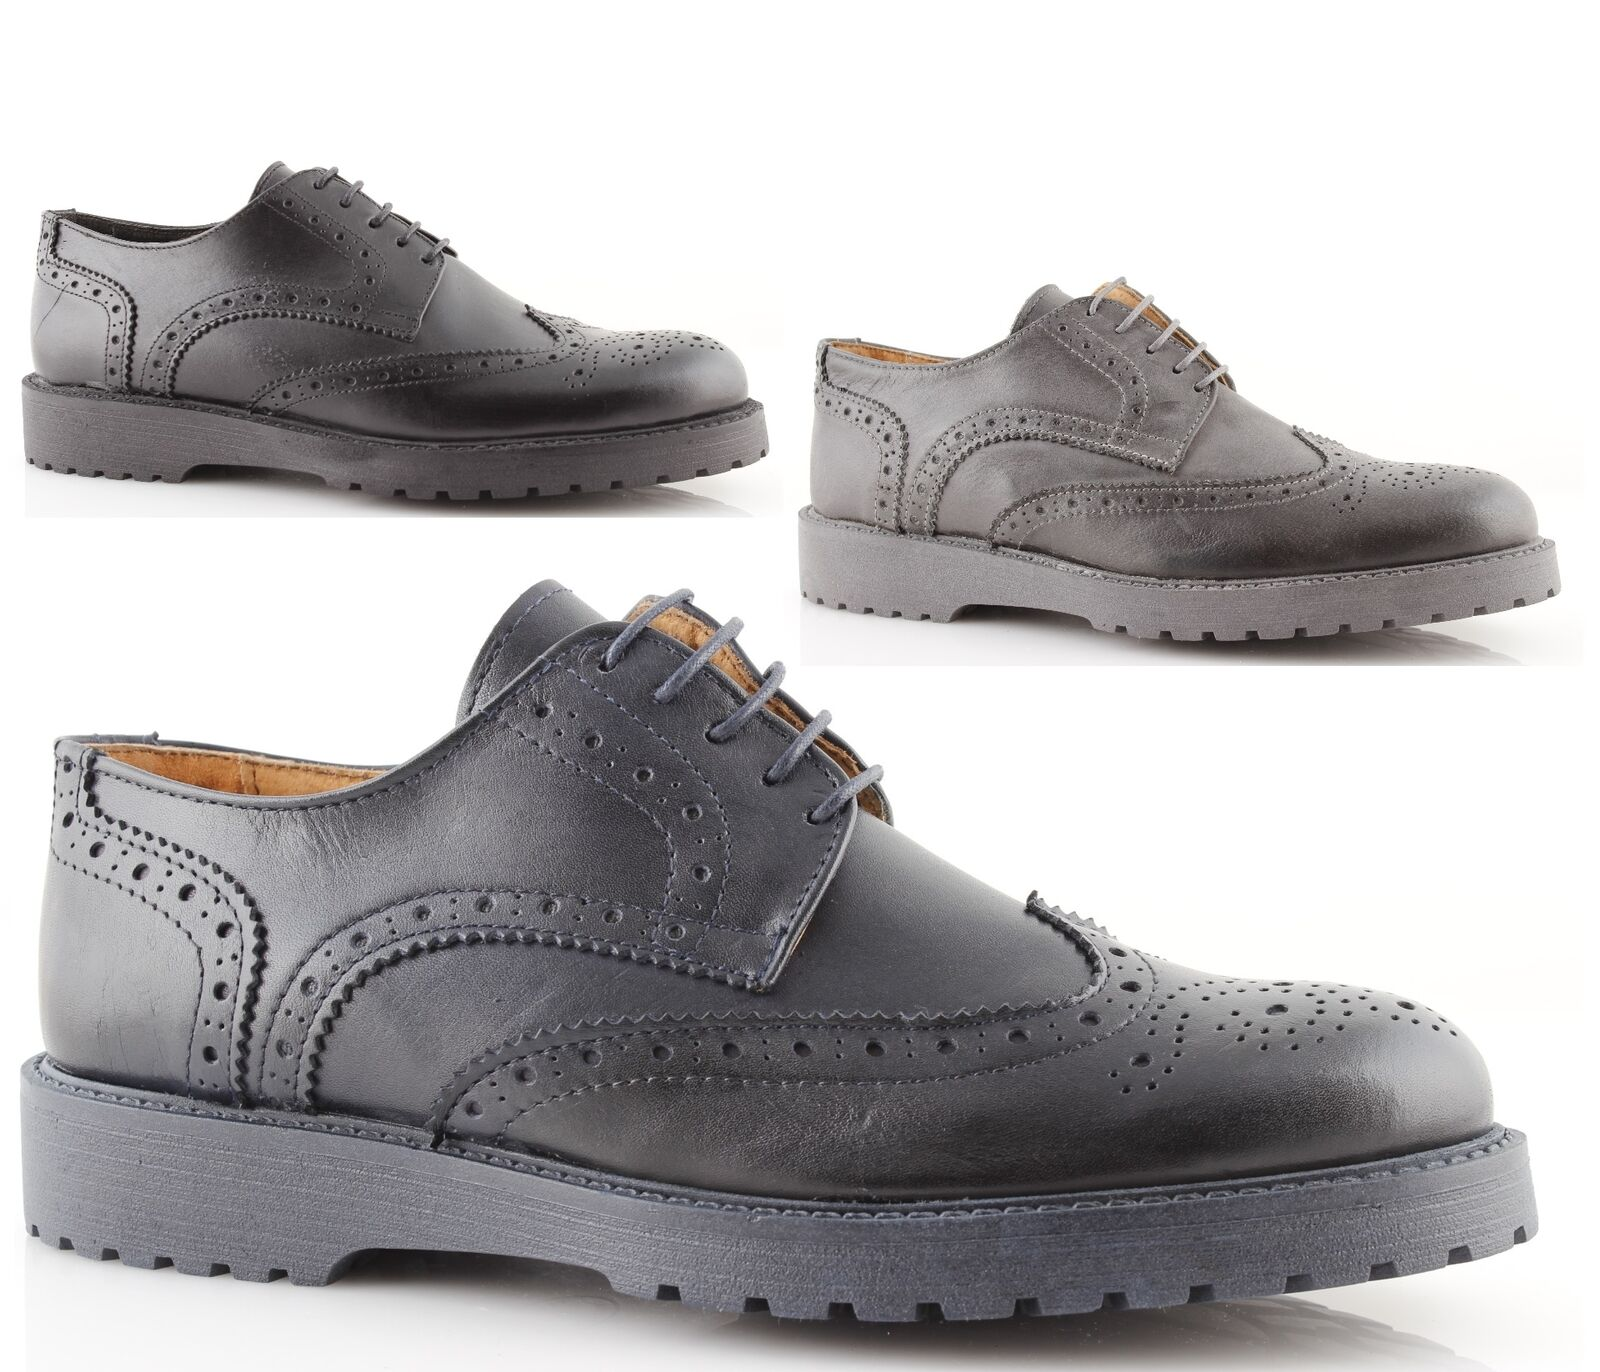 shoes oxford man black bluee low lace-up oxford shoes leather made in ITALY